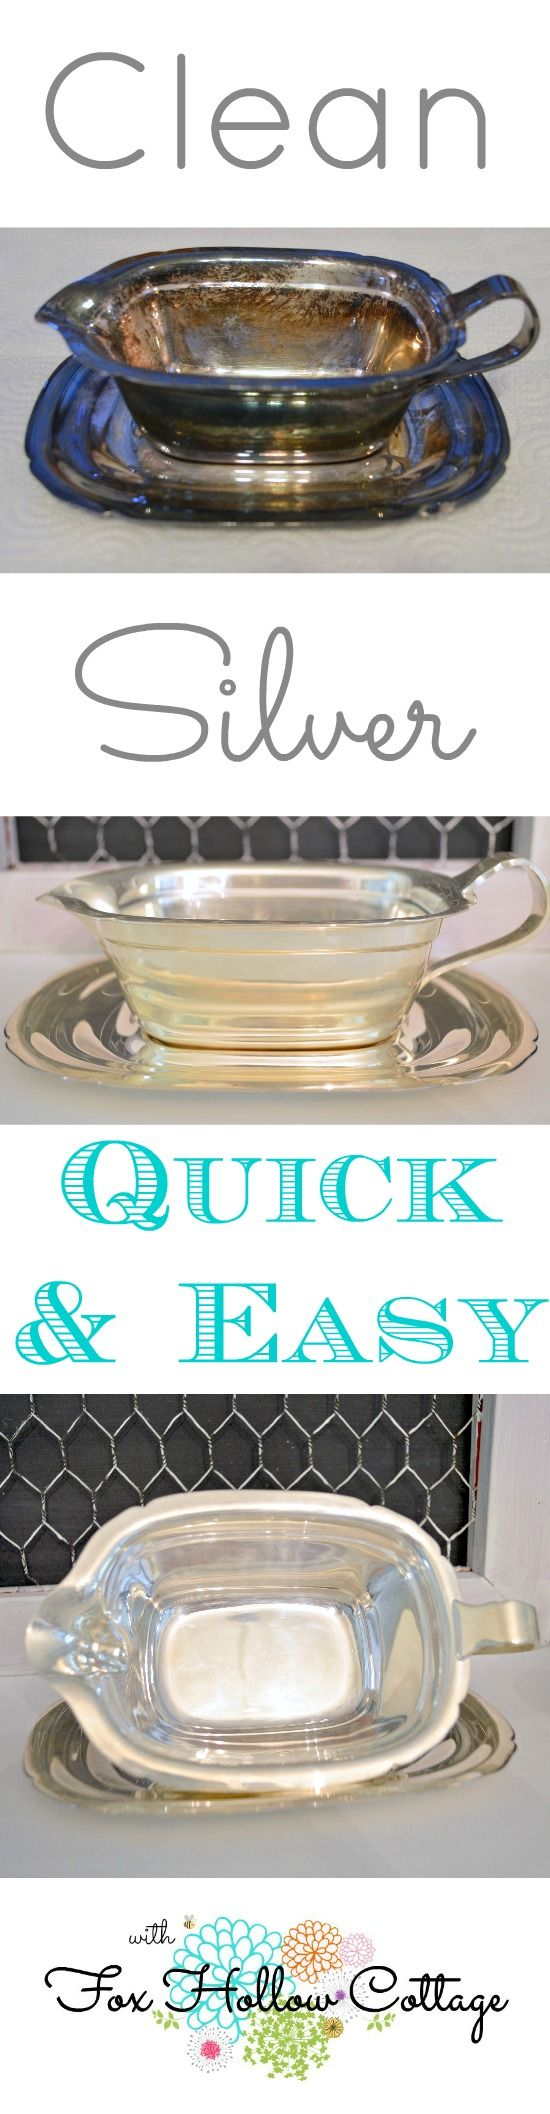 How To Clean Silver Quick and Easy!